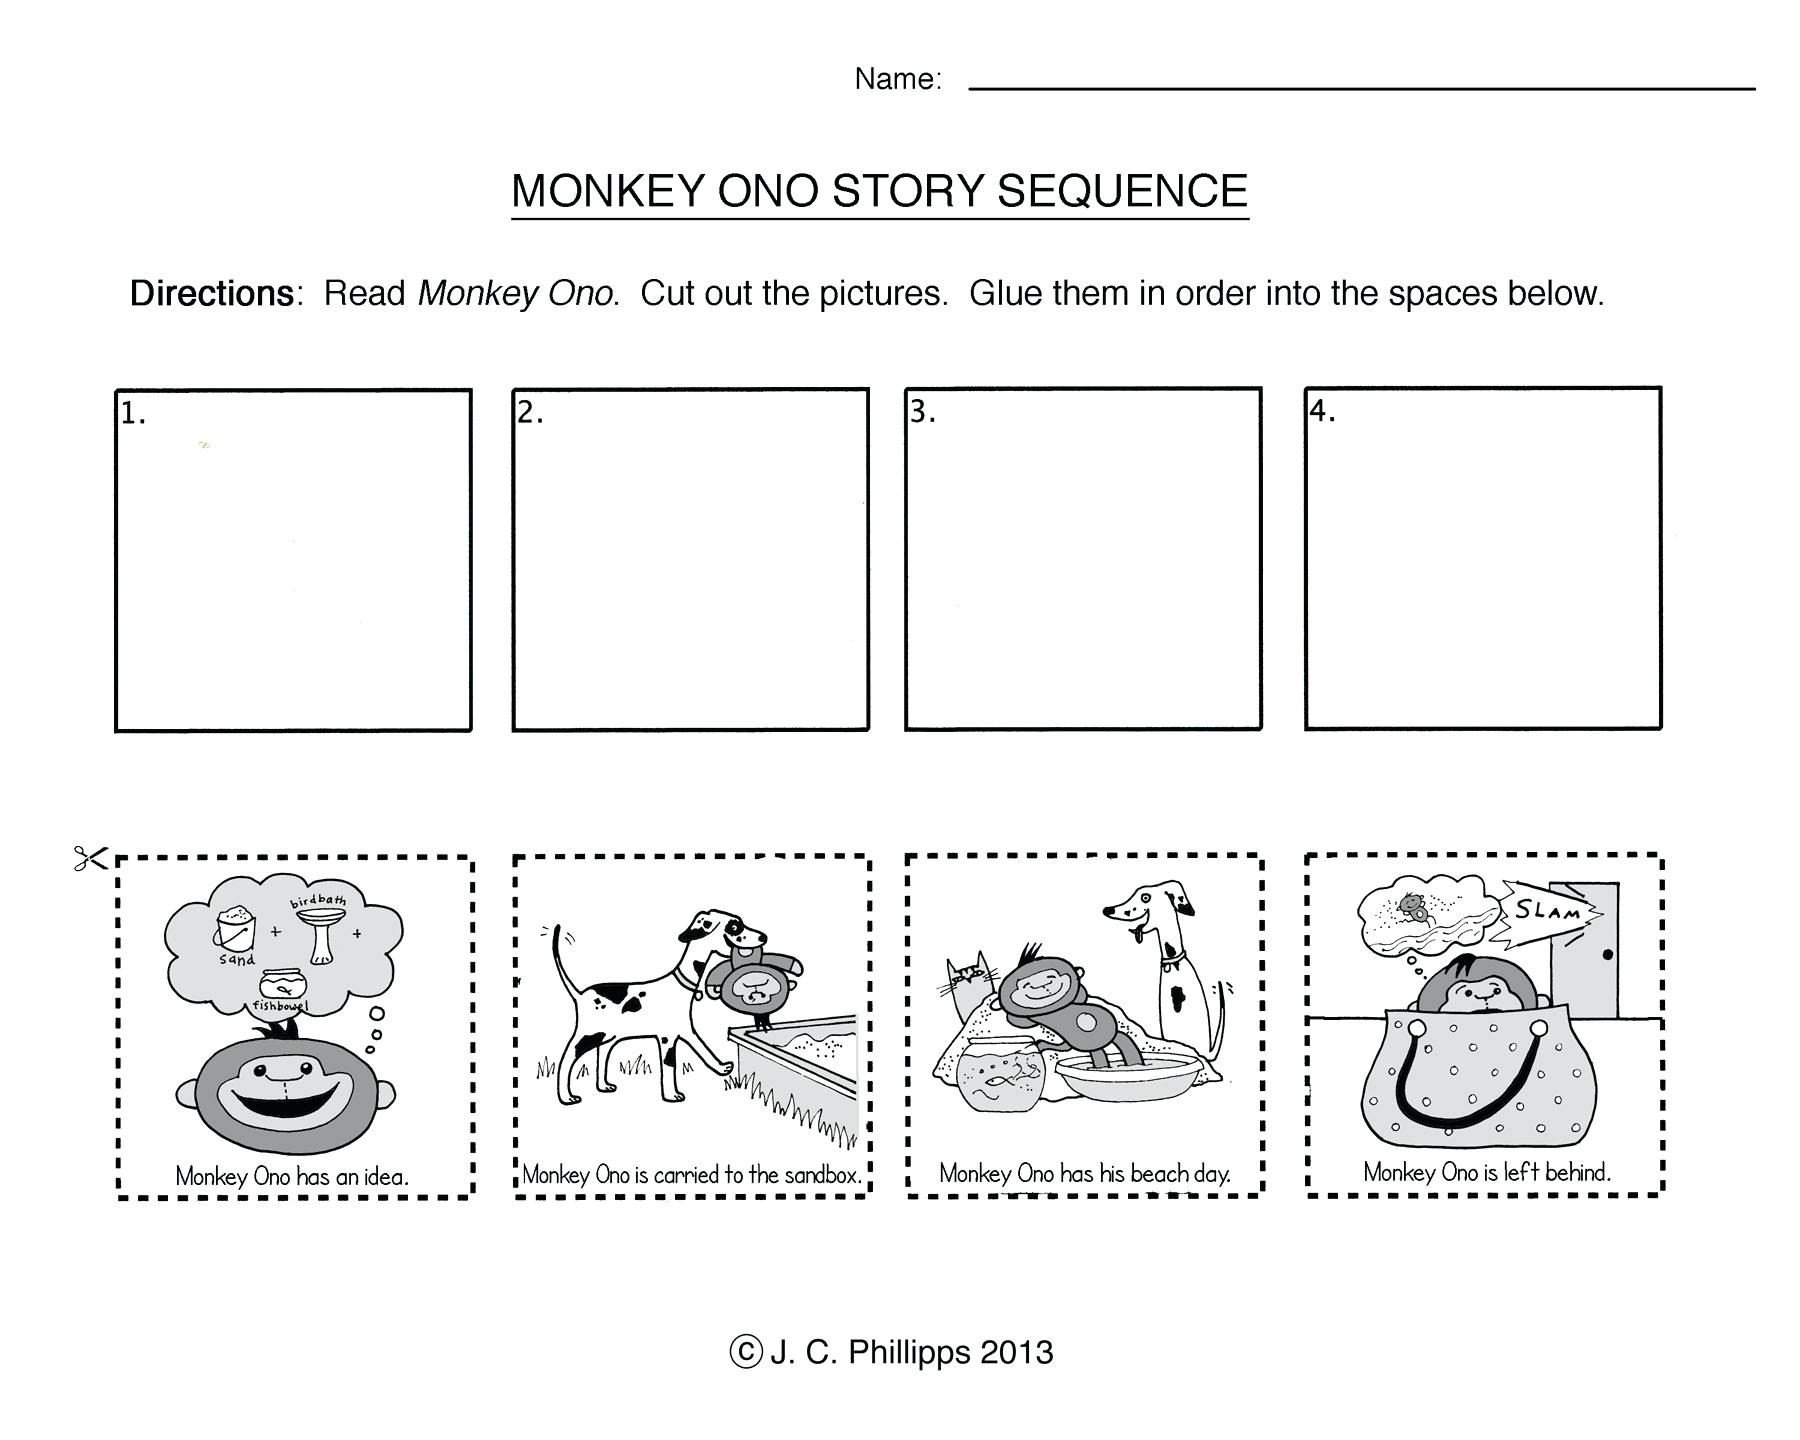 sequence worksheets for 1st grade sequencing worksheets have fun free printable sequencing worksheets for 1st grade